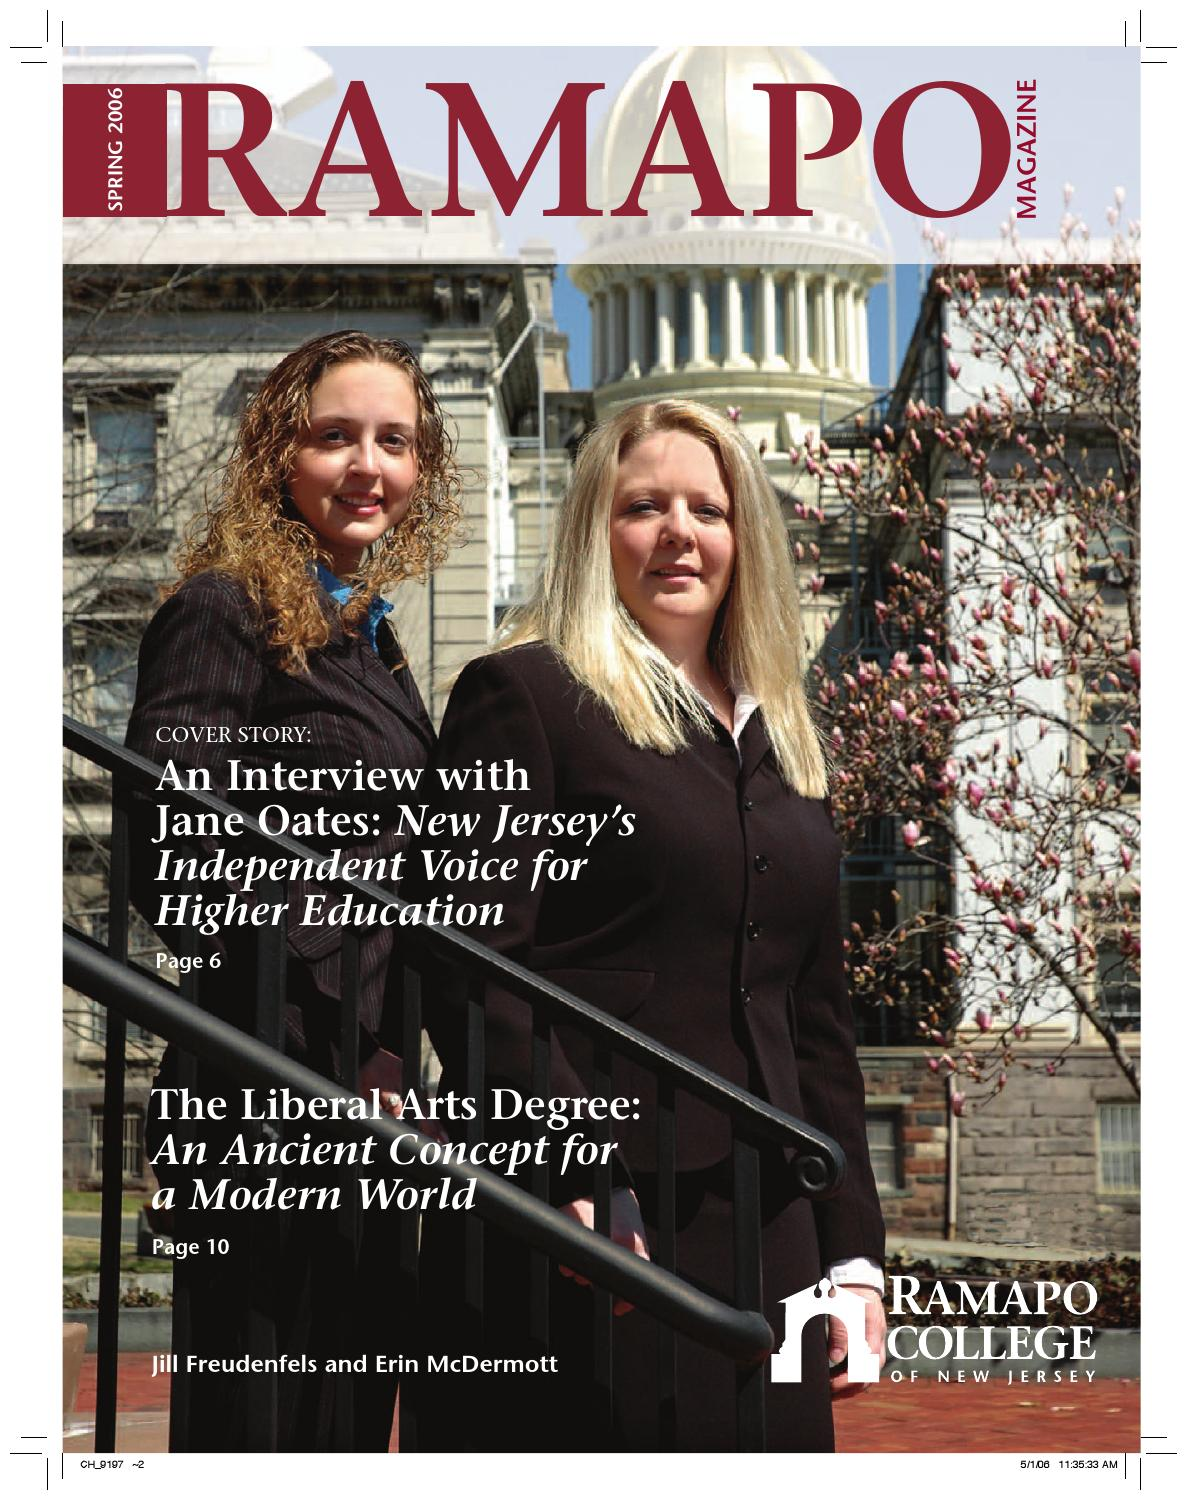 ramapo essay Admission to ramapo college is based on several factors there are no minimum cut offs in any category applicants should be pursuing a college preparatory curriculum that is individually challenging ap, ib and honors courses are looked upon favorably apply now · create a custom guidebook · schedule a visit.